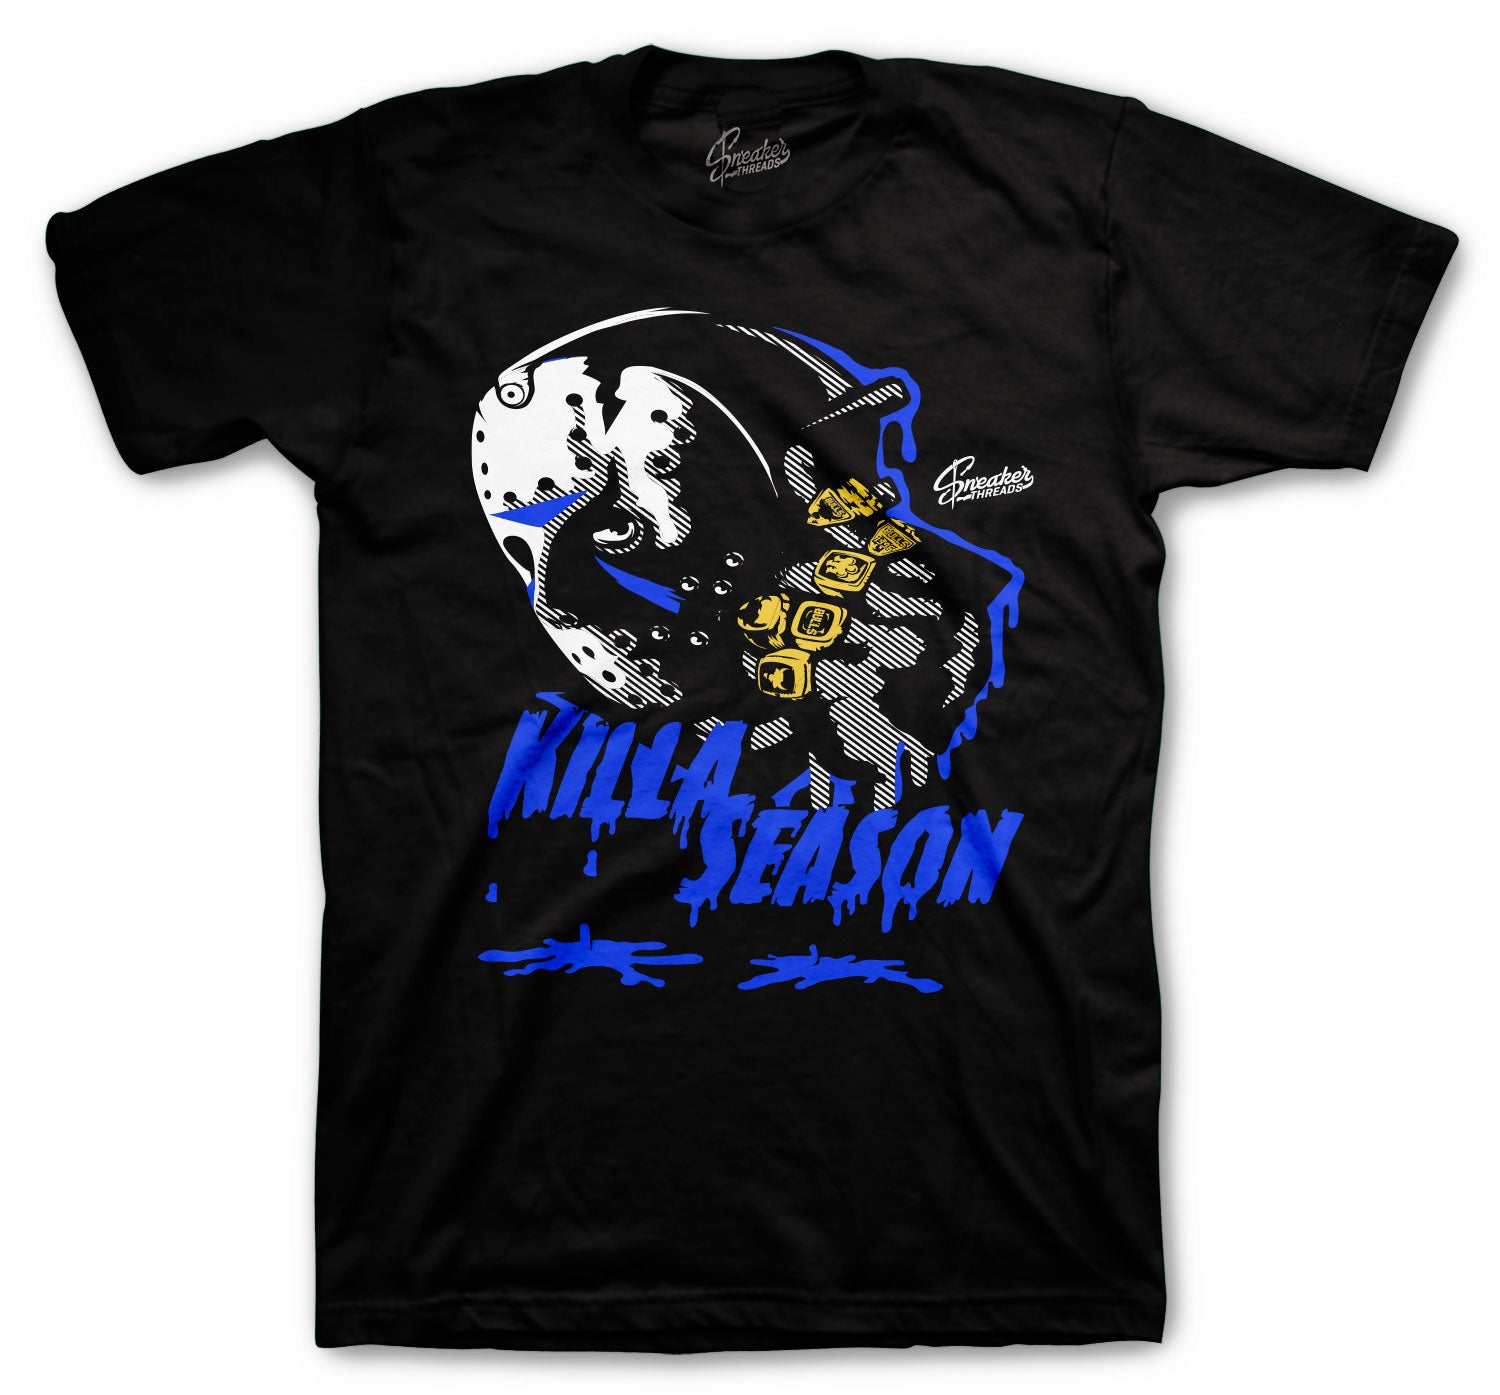 Jordan 14 Hyper Royal Killa Season Shirt